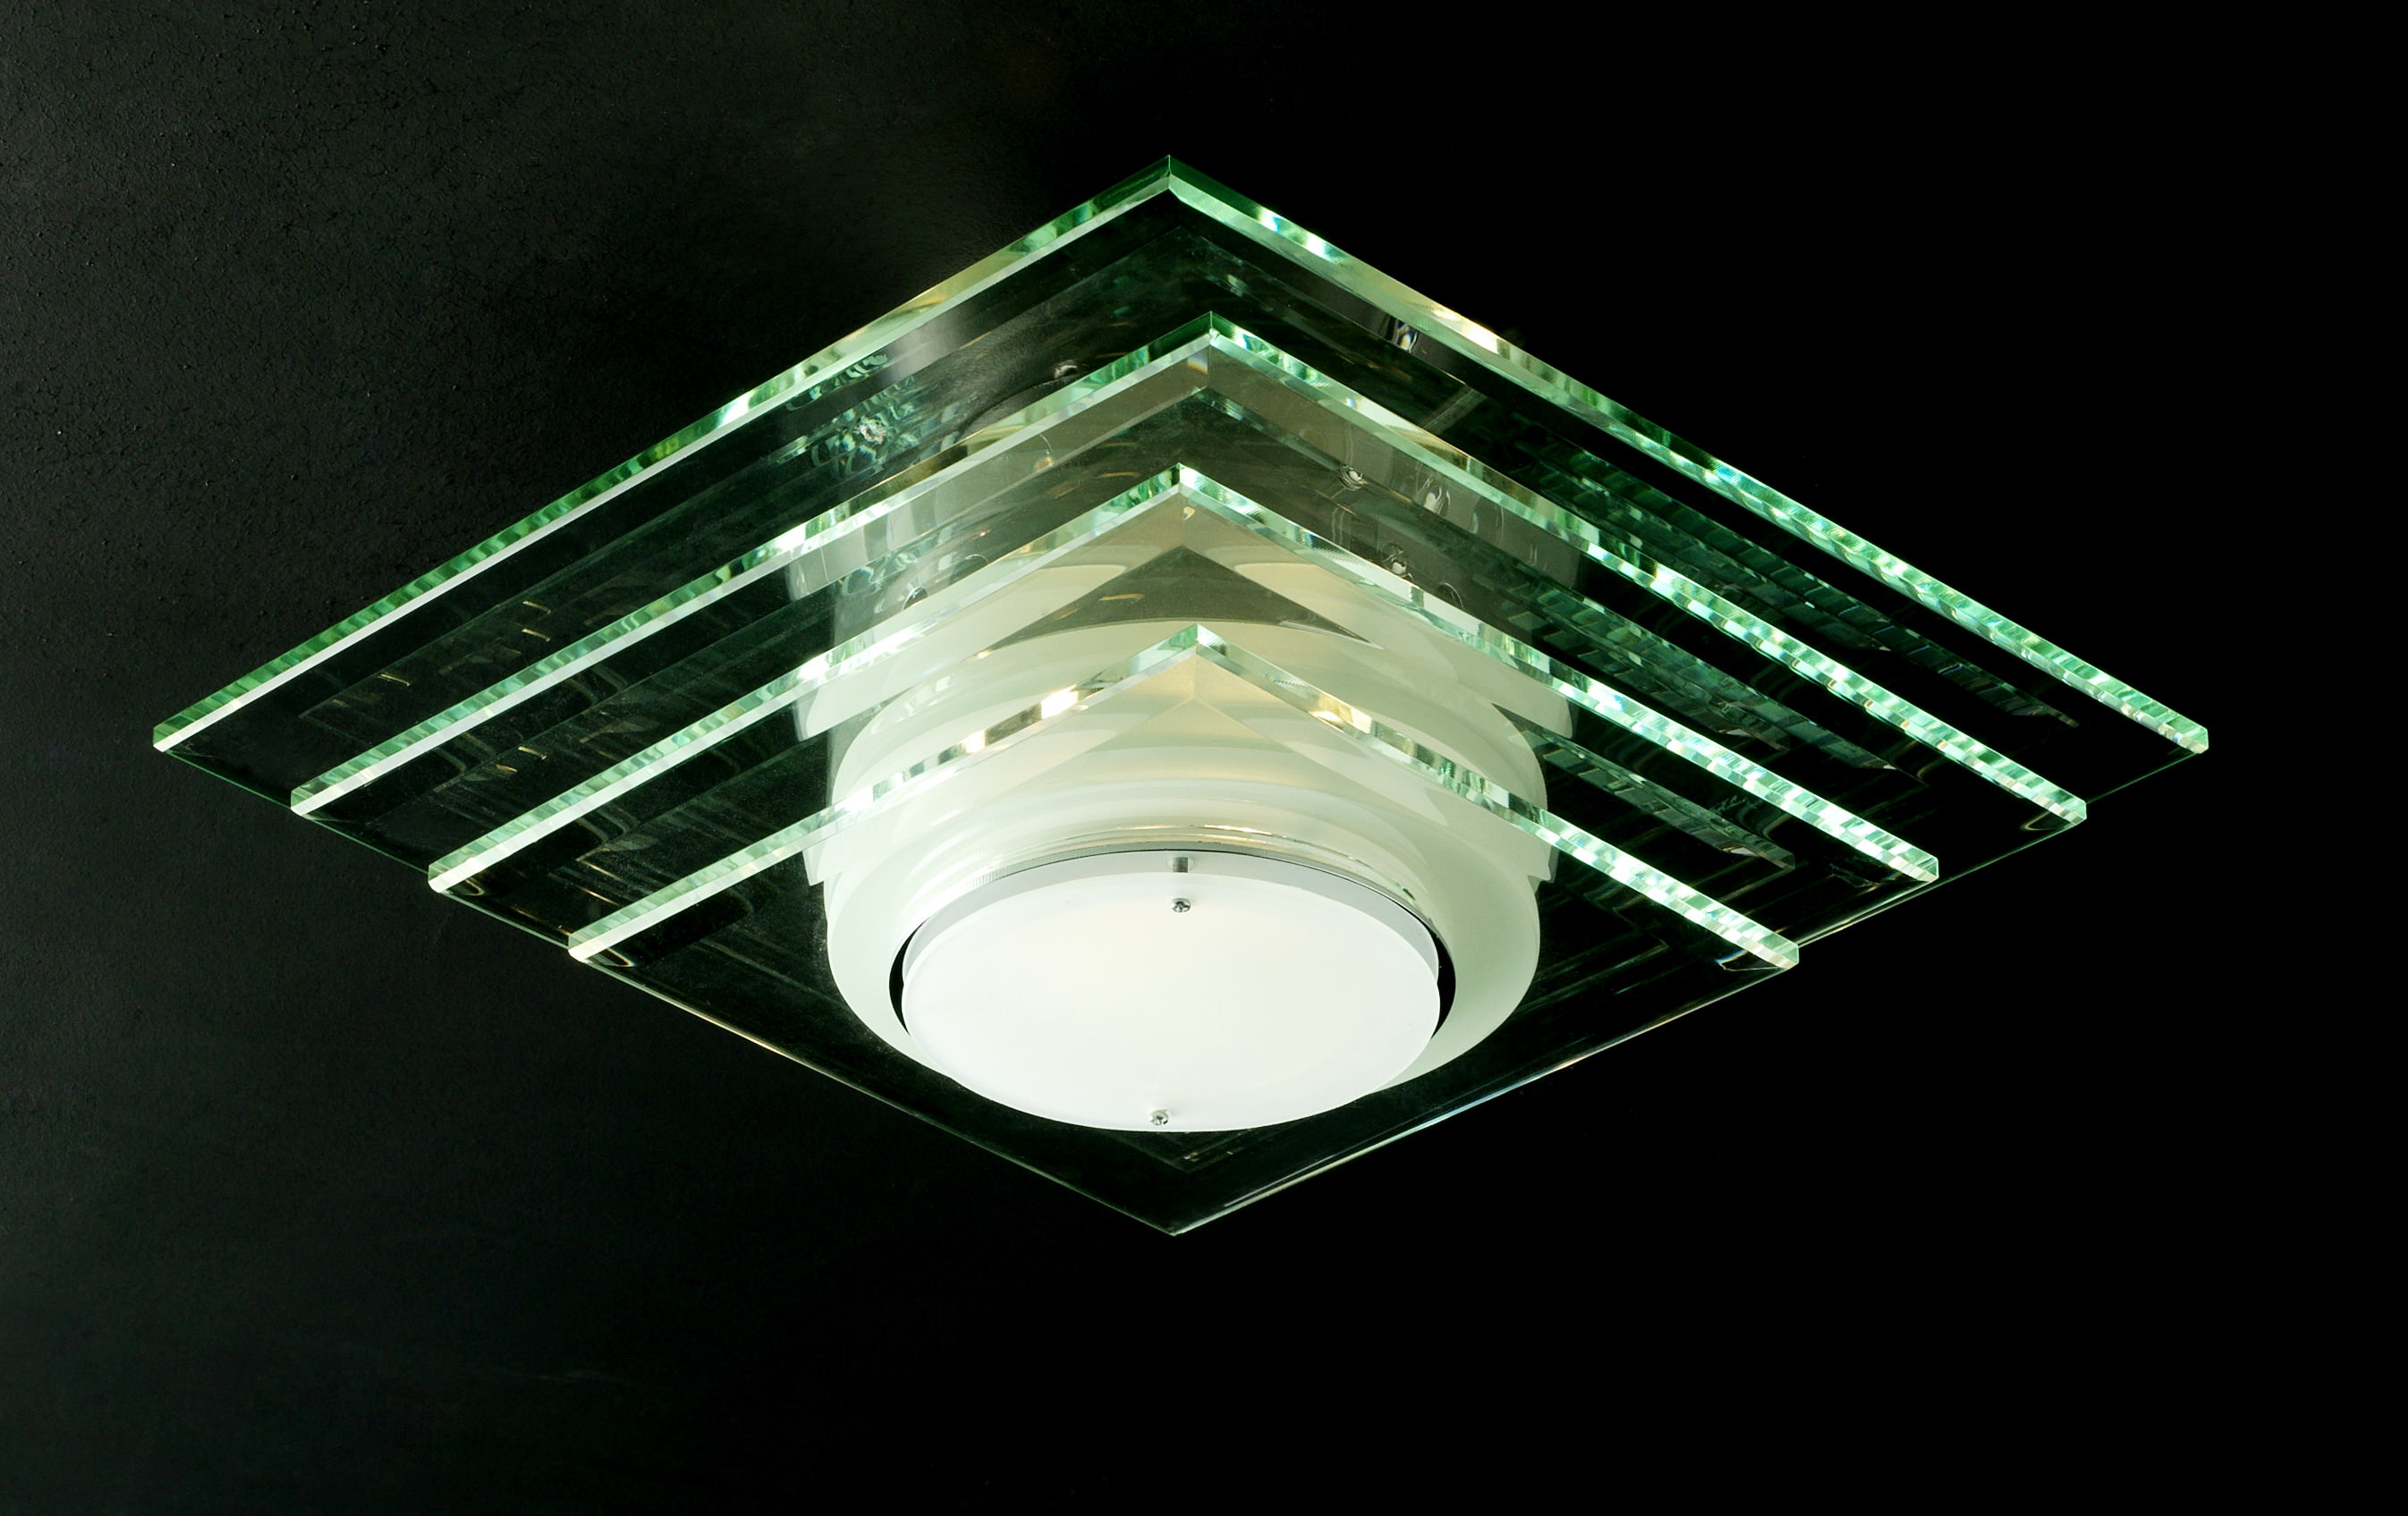 Ceiling Spotlight With 3 Lights 3d Model 3ds Max Files